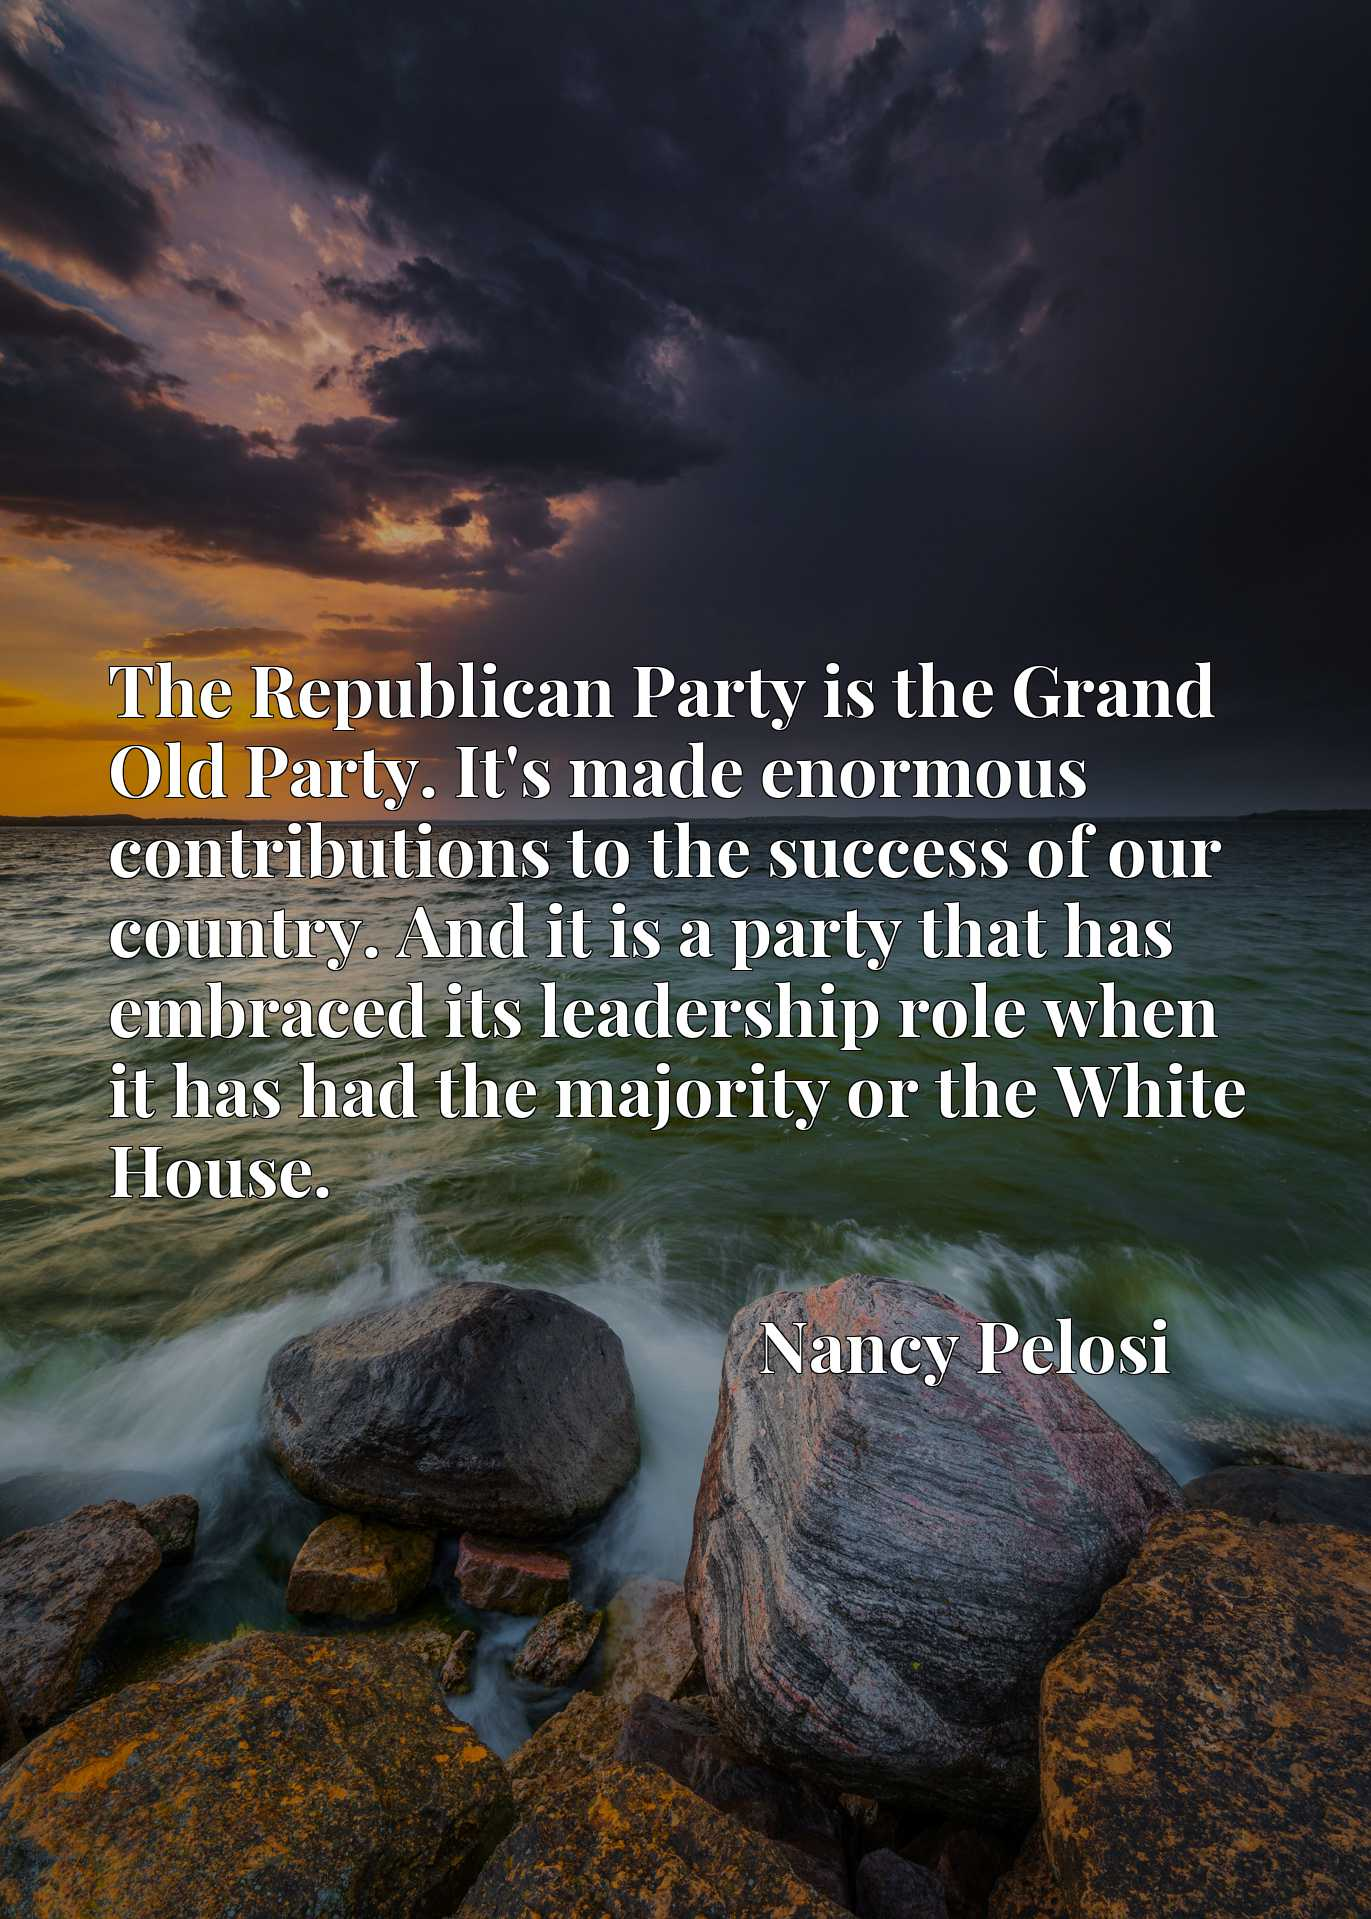 The Republican Party is the Grand Old Party. It's made enormous contributions to the success of our country. And it is a party that has embraced its leadership role when it has had the majority or the White House.